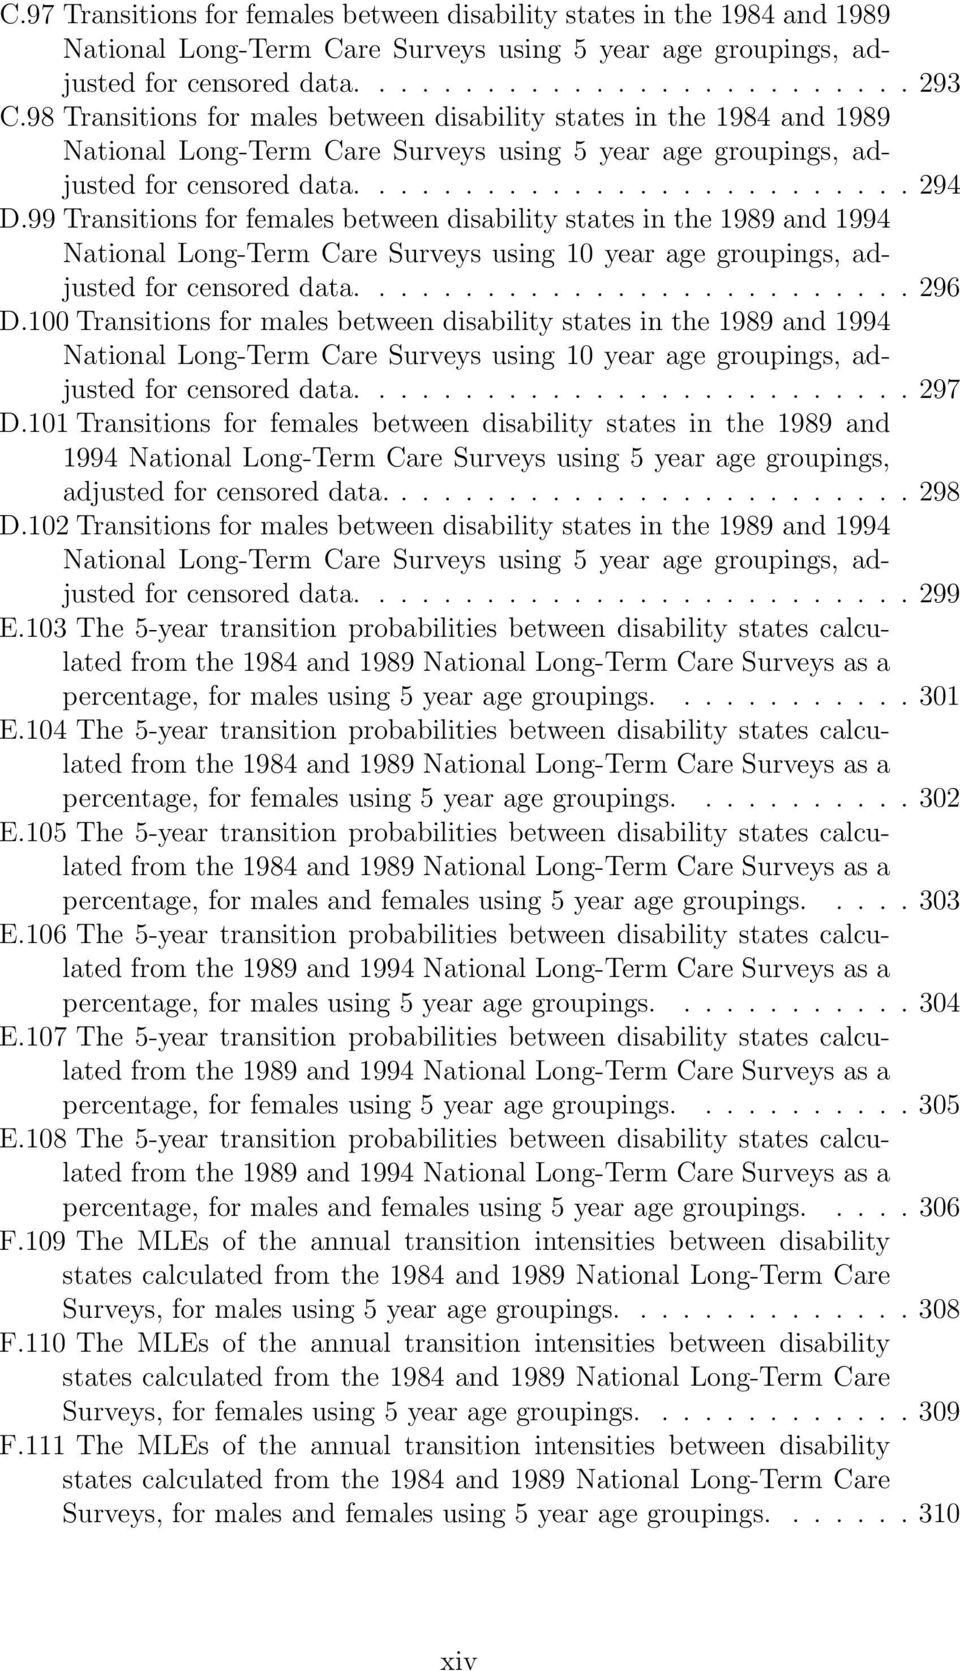 99 Transitions for females between disability states in the 1989 and 1994 National LongTerm Care Surveys using 10 year age groupings, adjusted for censored data....296 D.